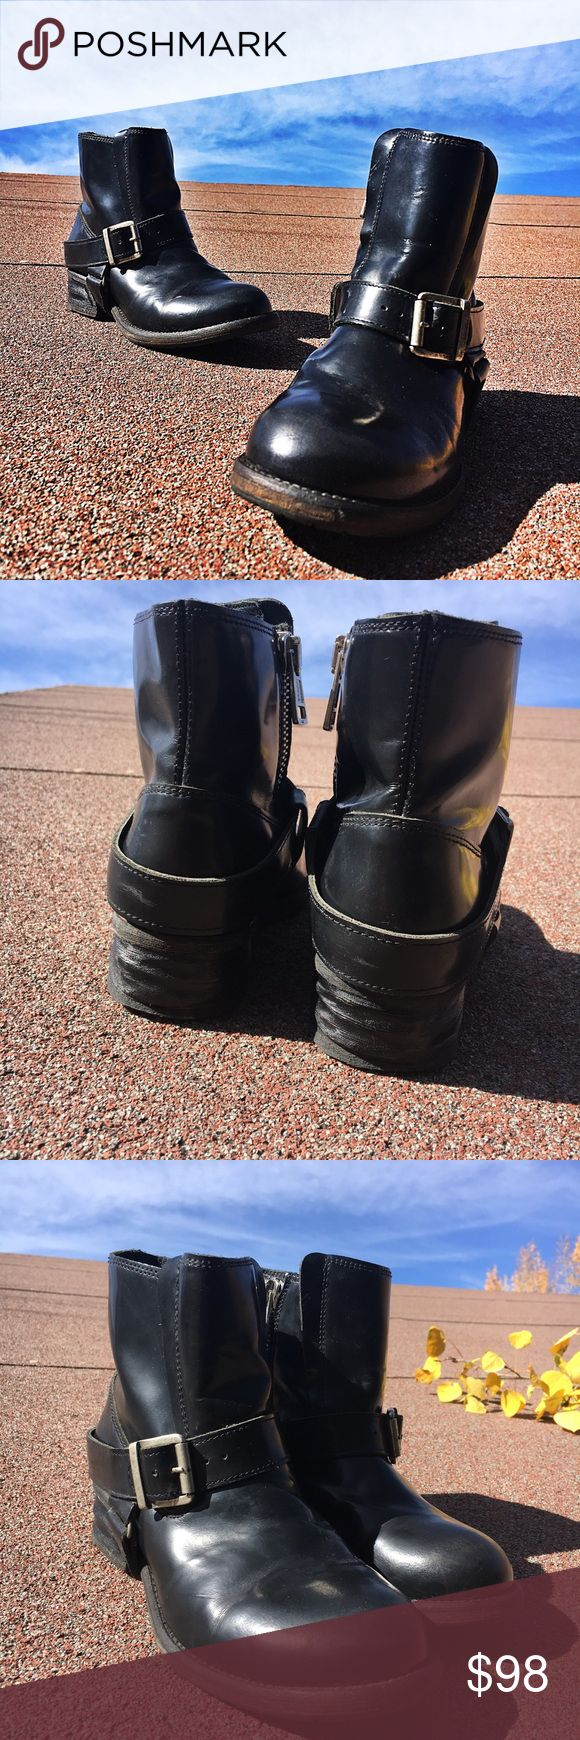 """All Saints Jules Boots Black leather boots.. nice tread ..heel:1 1/4"""" Height:7"""" top opening:5"""" across   side zip entry.. size 37 few signs of wear ..perfectly broken in..wide toe box... fits more like a 6.5 no trades All Saints Shoes Ankle Boots & Booties"""